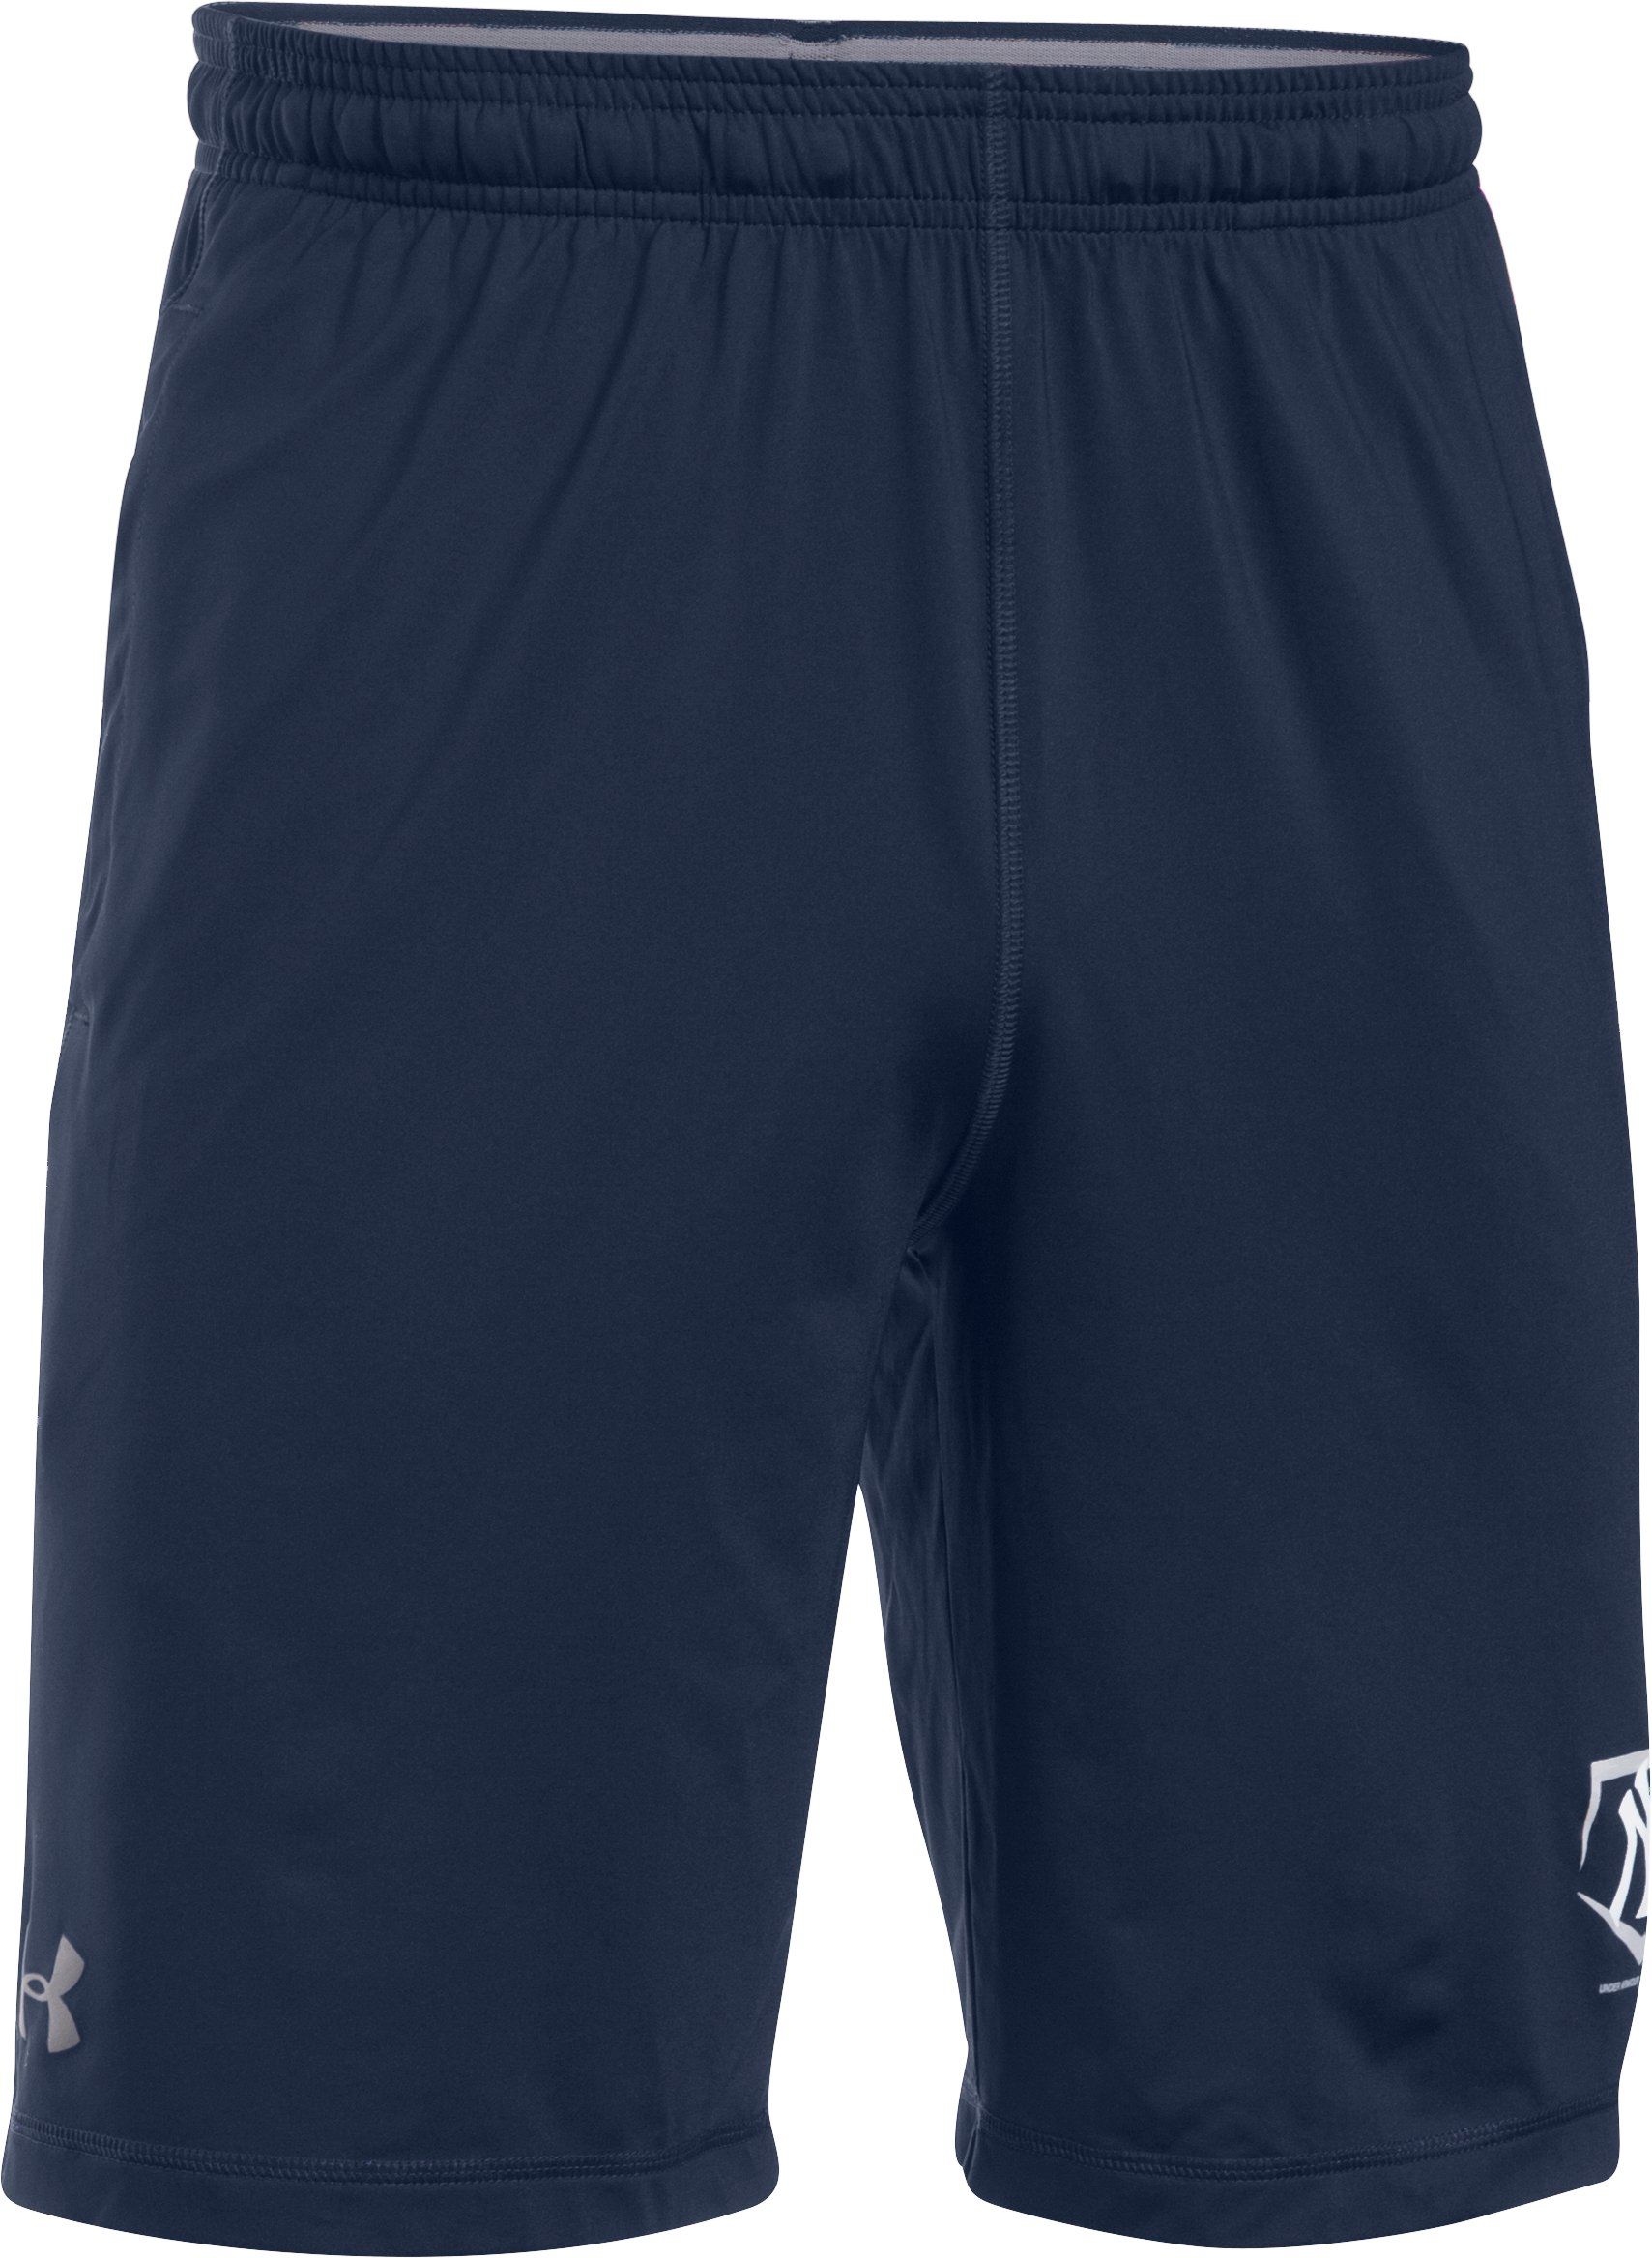 Men's New York Yankees Raid Shorts, Midnight Navy,